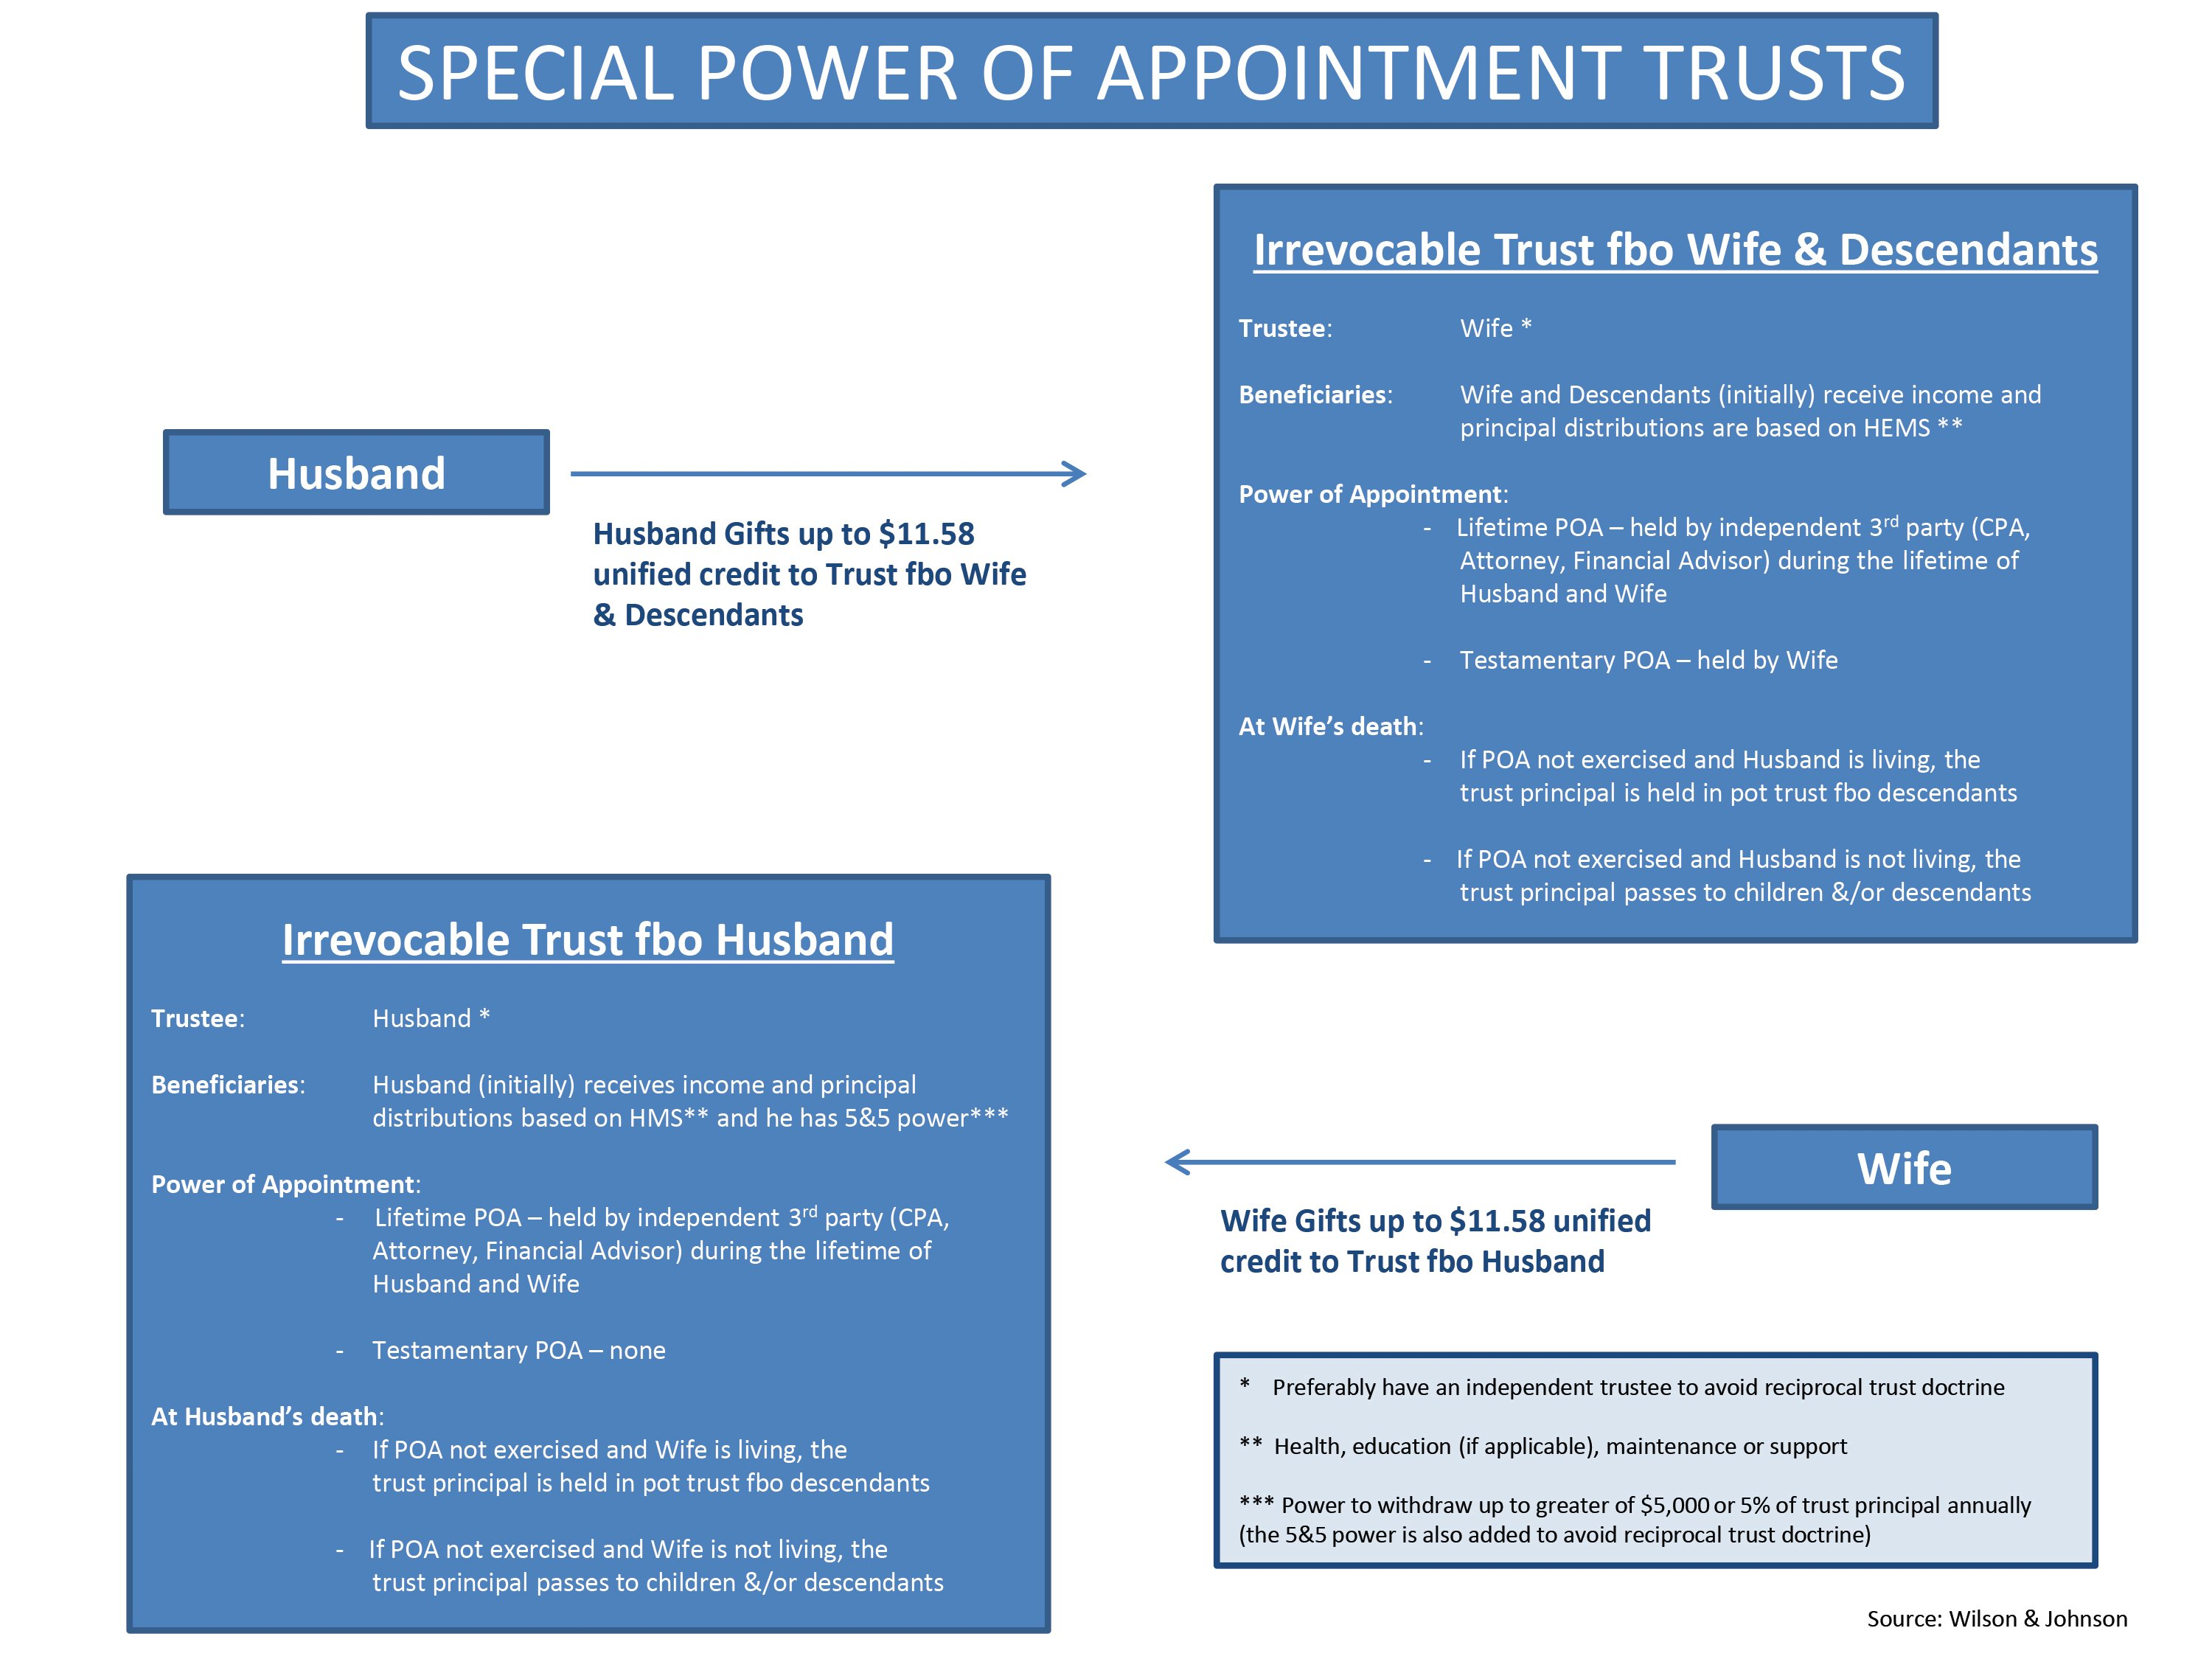 Special Power of Appointment Trusts Diagram